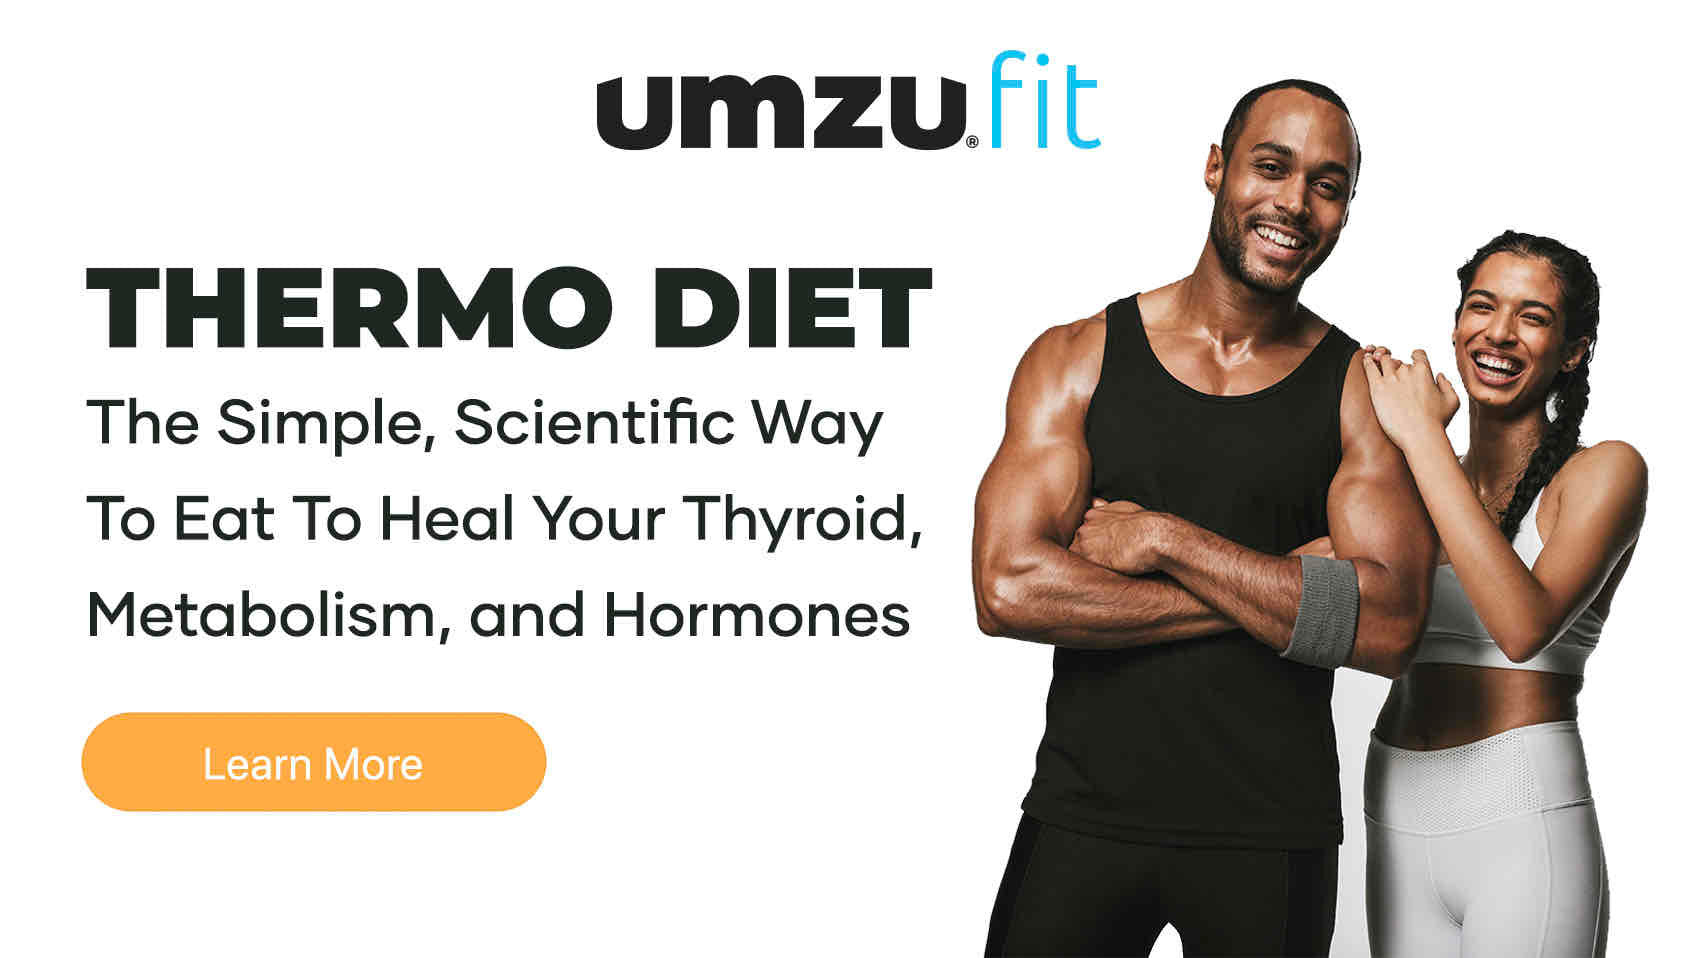 The Thermo Diet: How To Eat